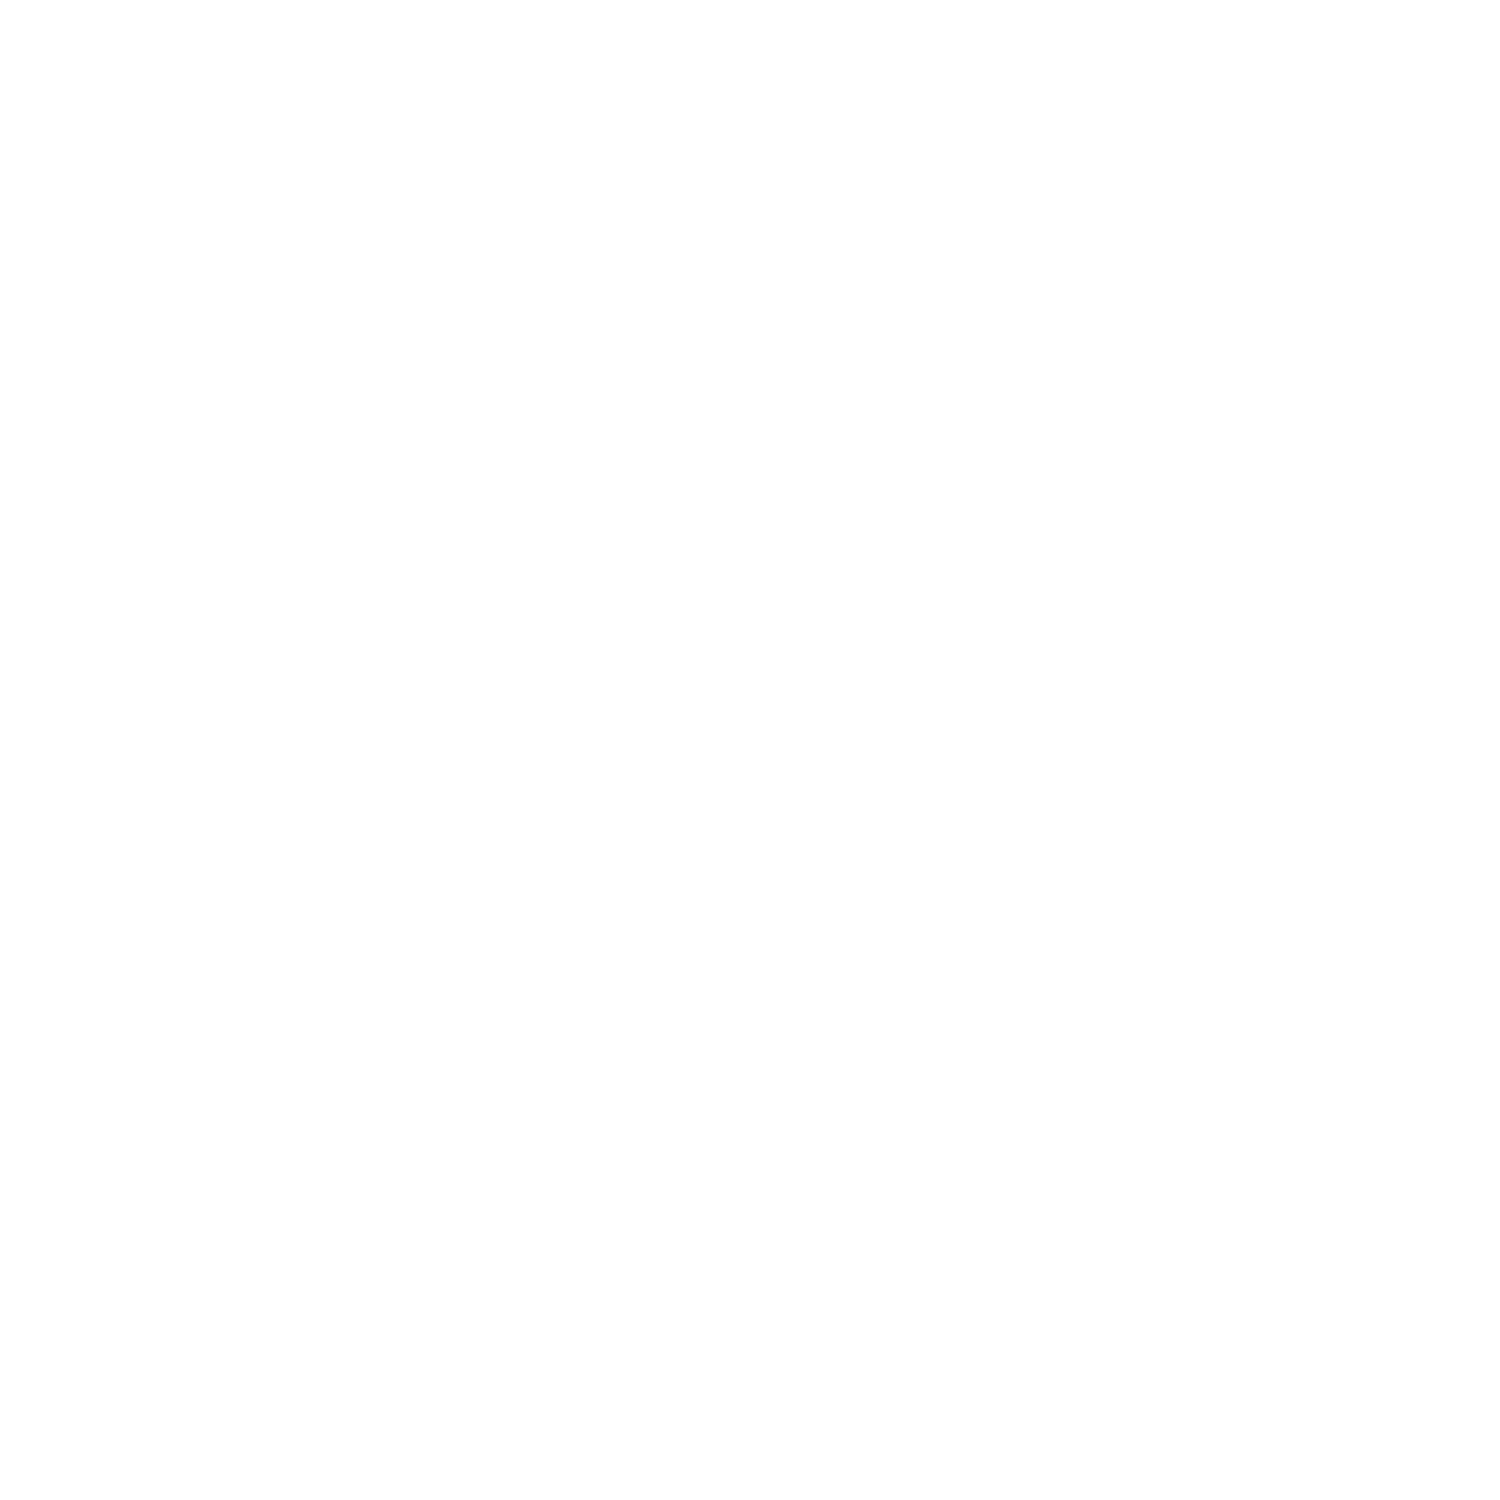 Memphis Arts Engine